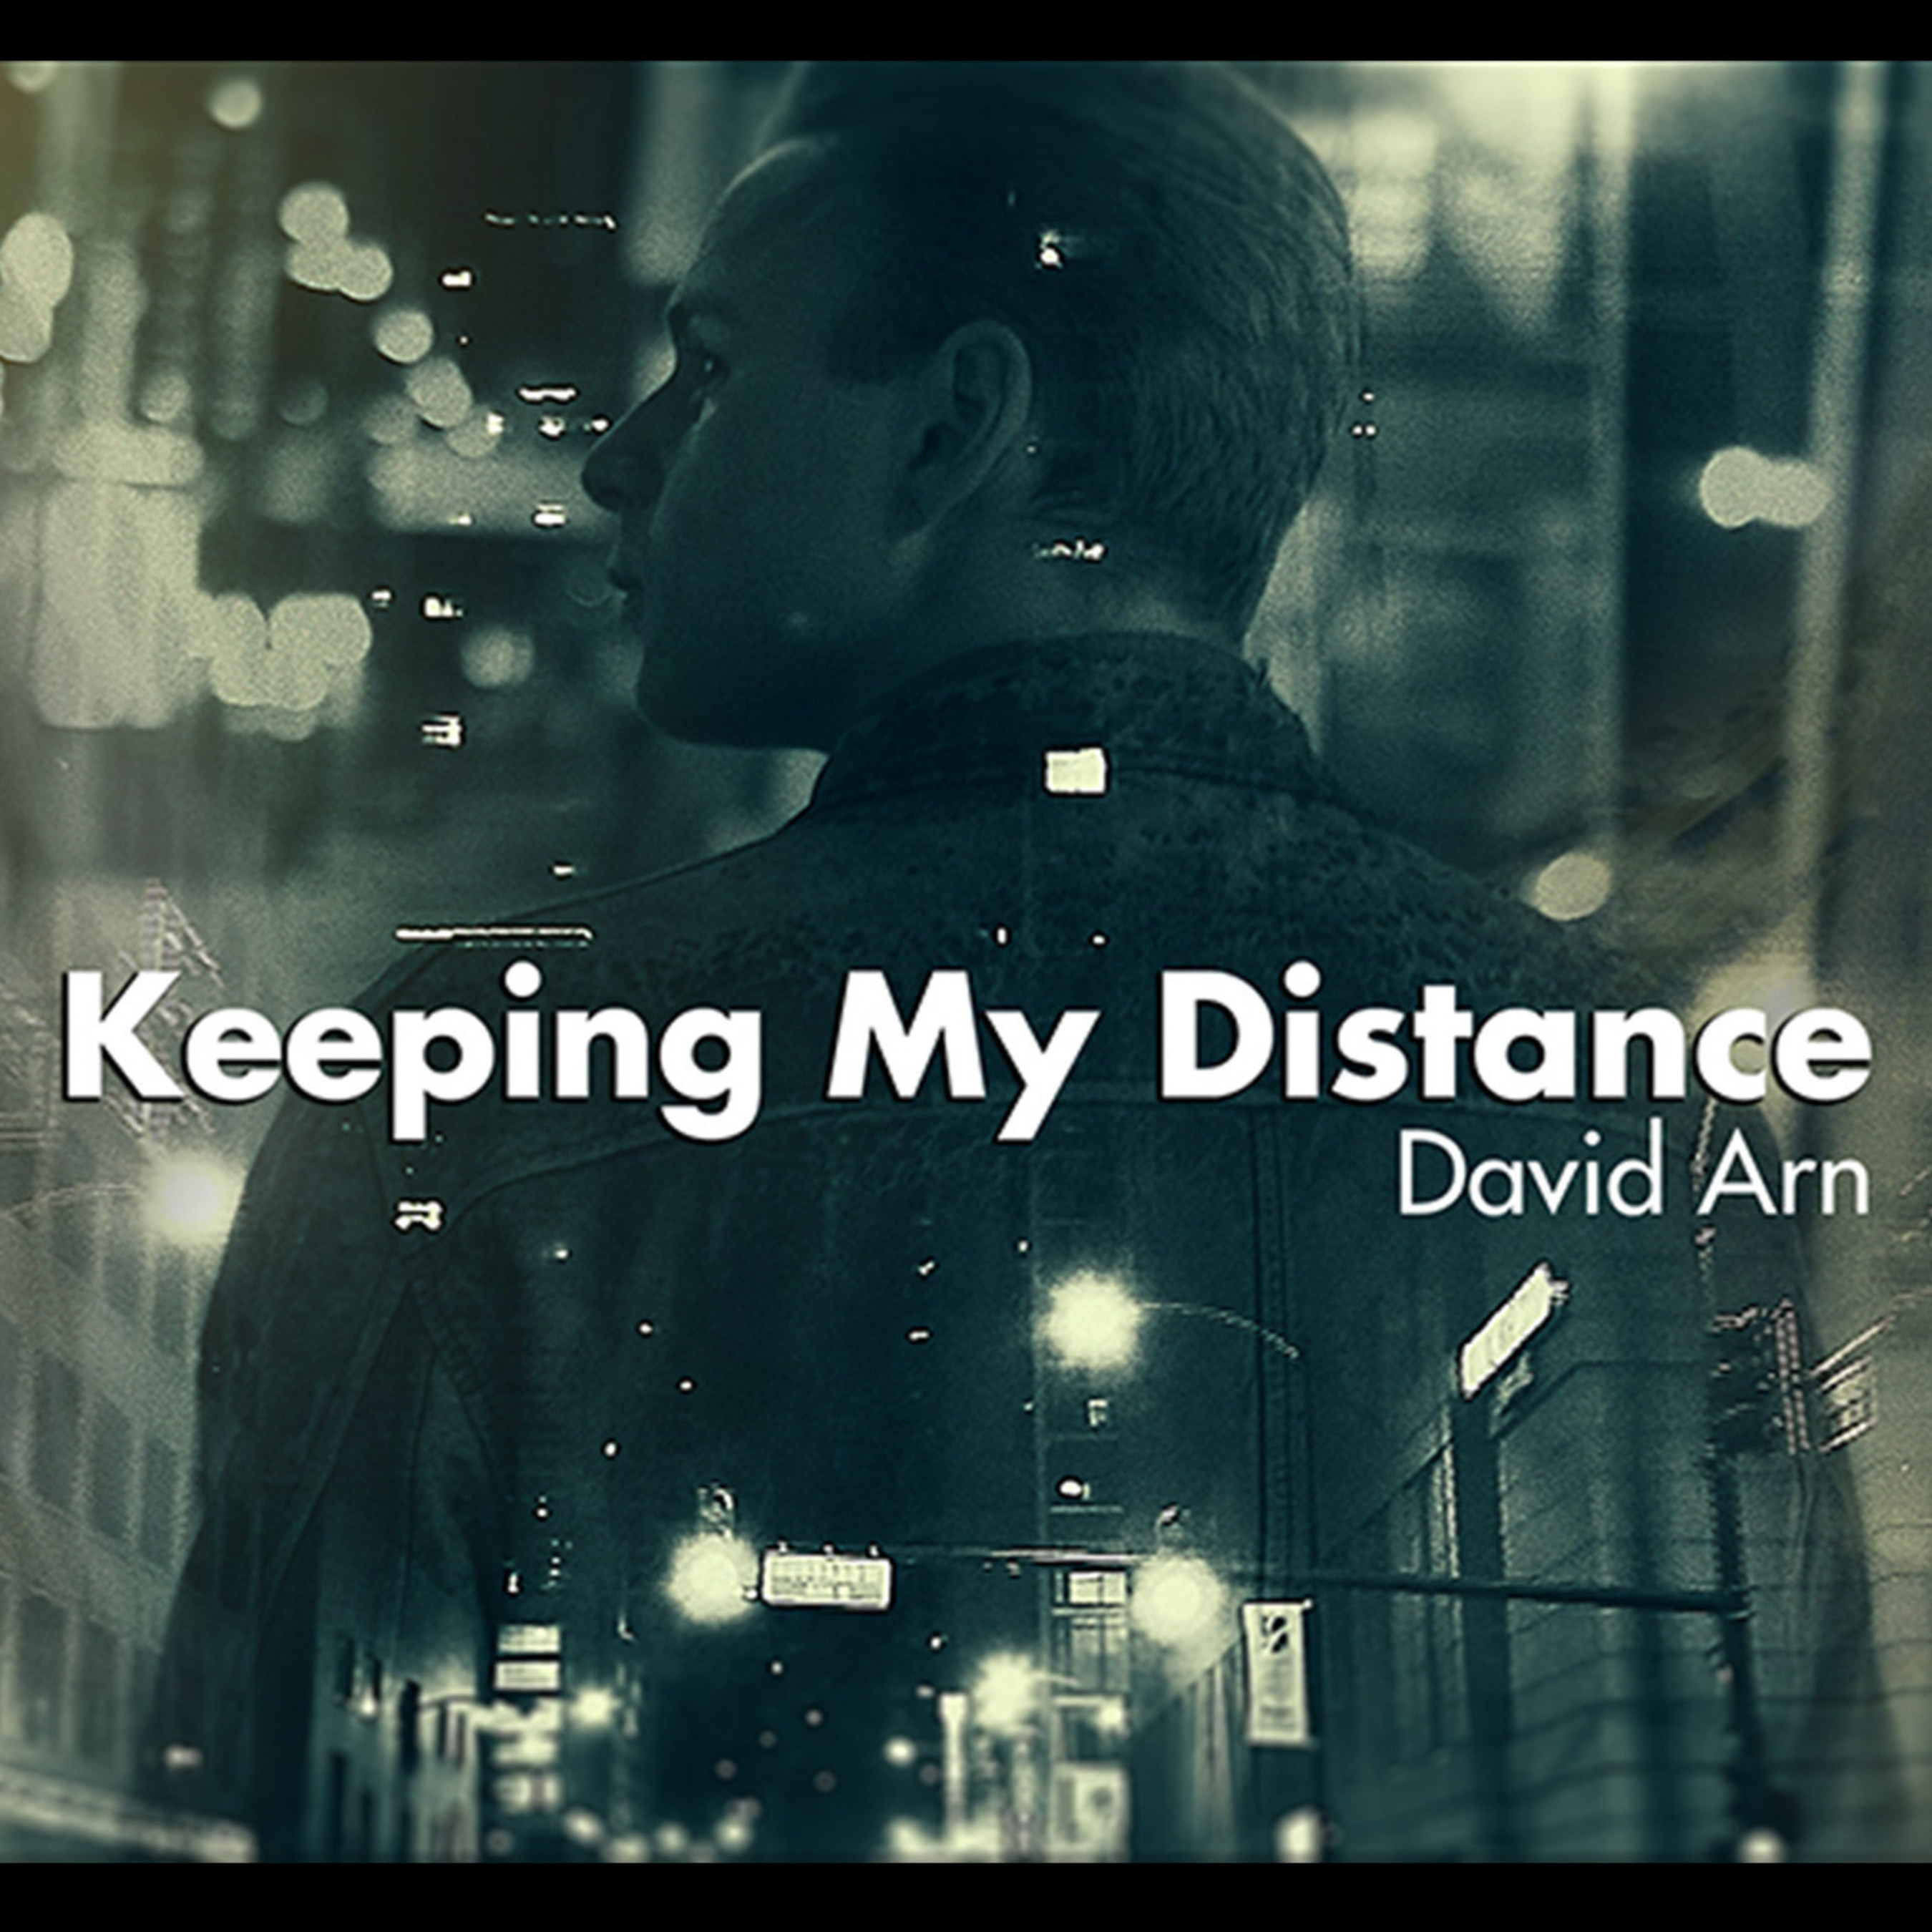 """David Arn's """"Keeping My Distance"""" Comes Closer to Music Fans With New Video by Montreal's Playmaker Studios"""